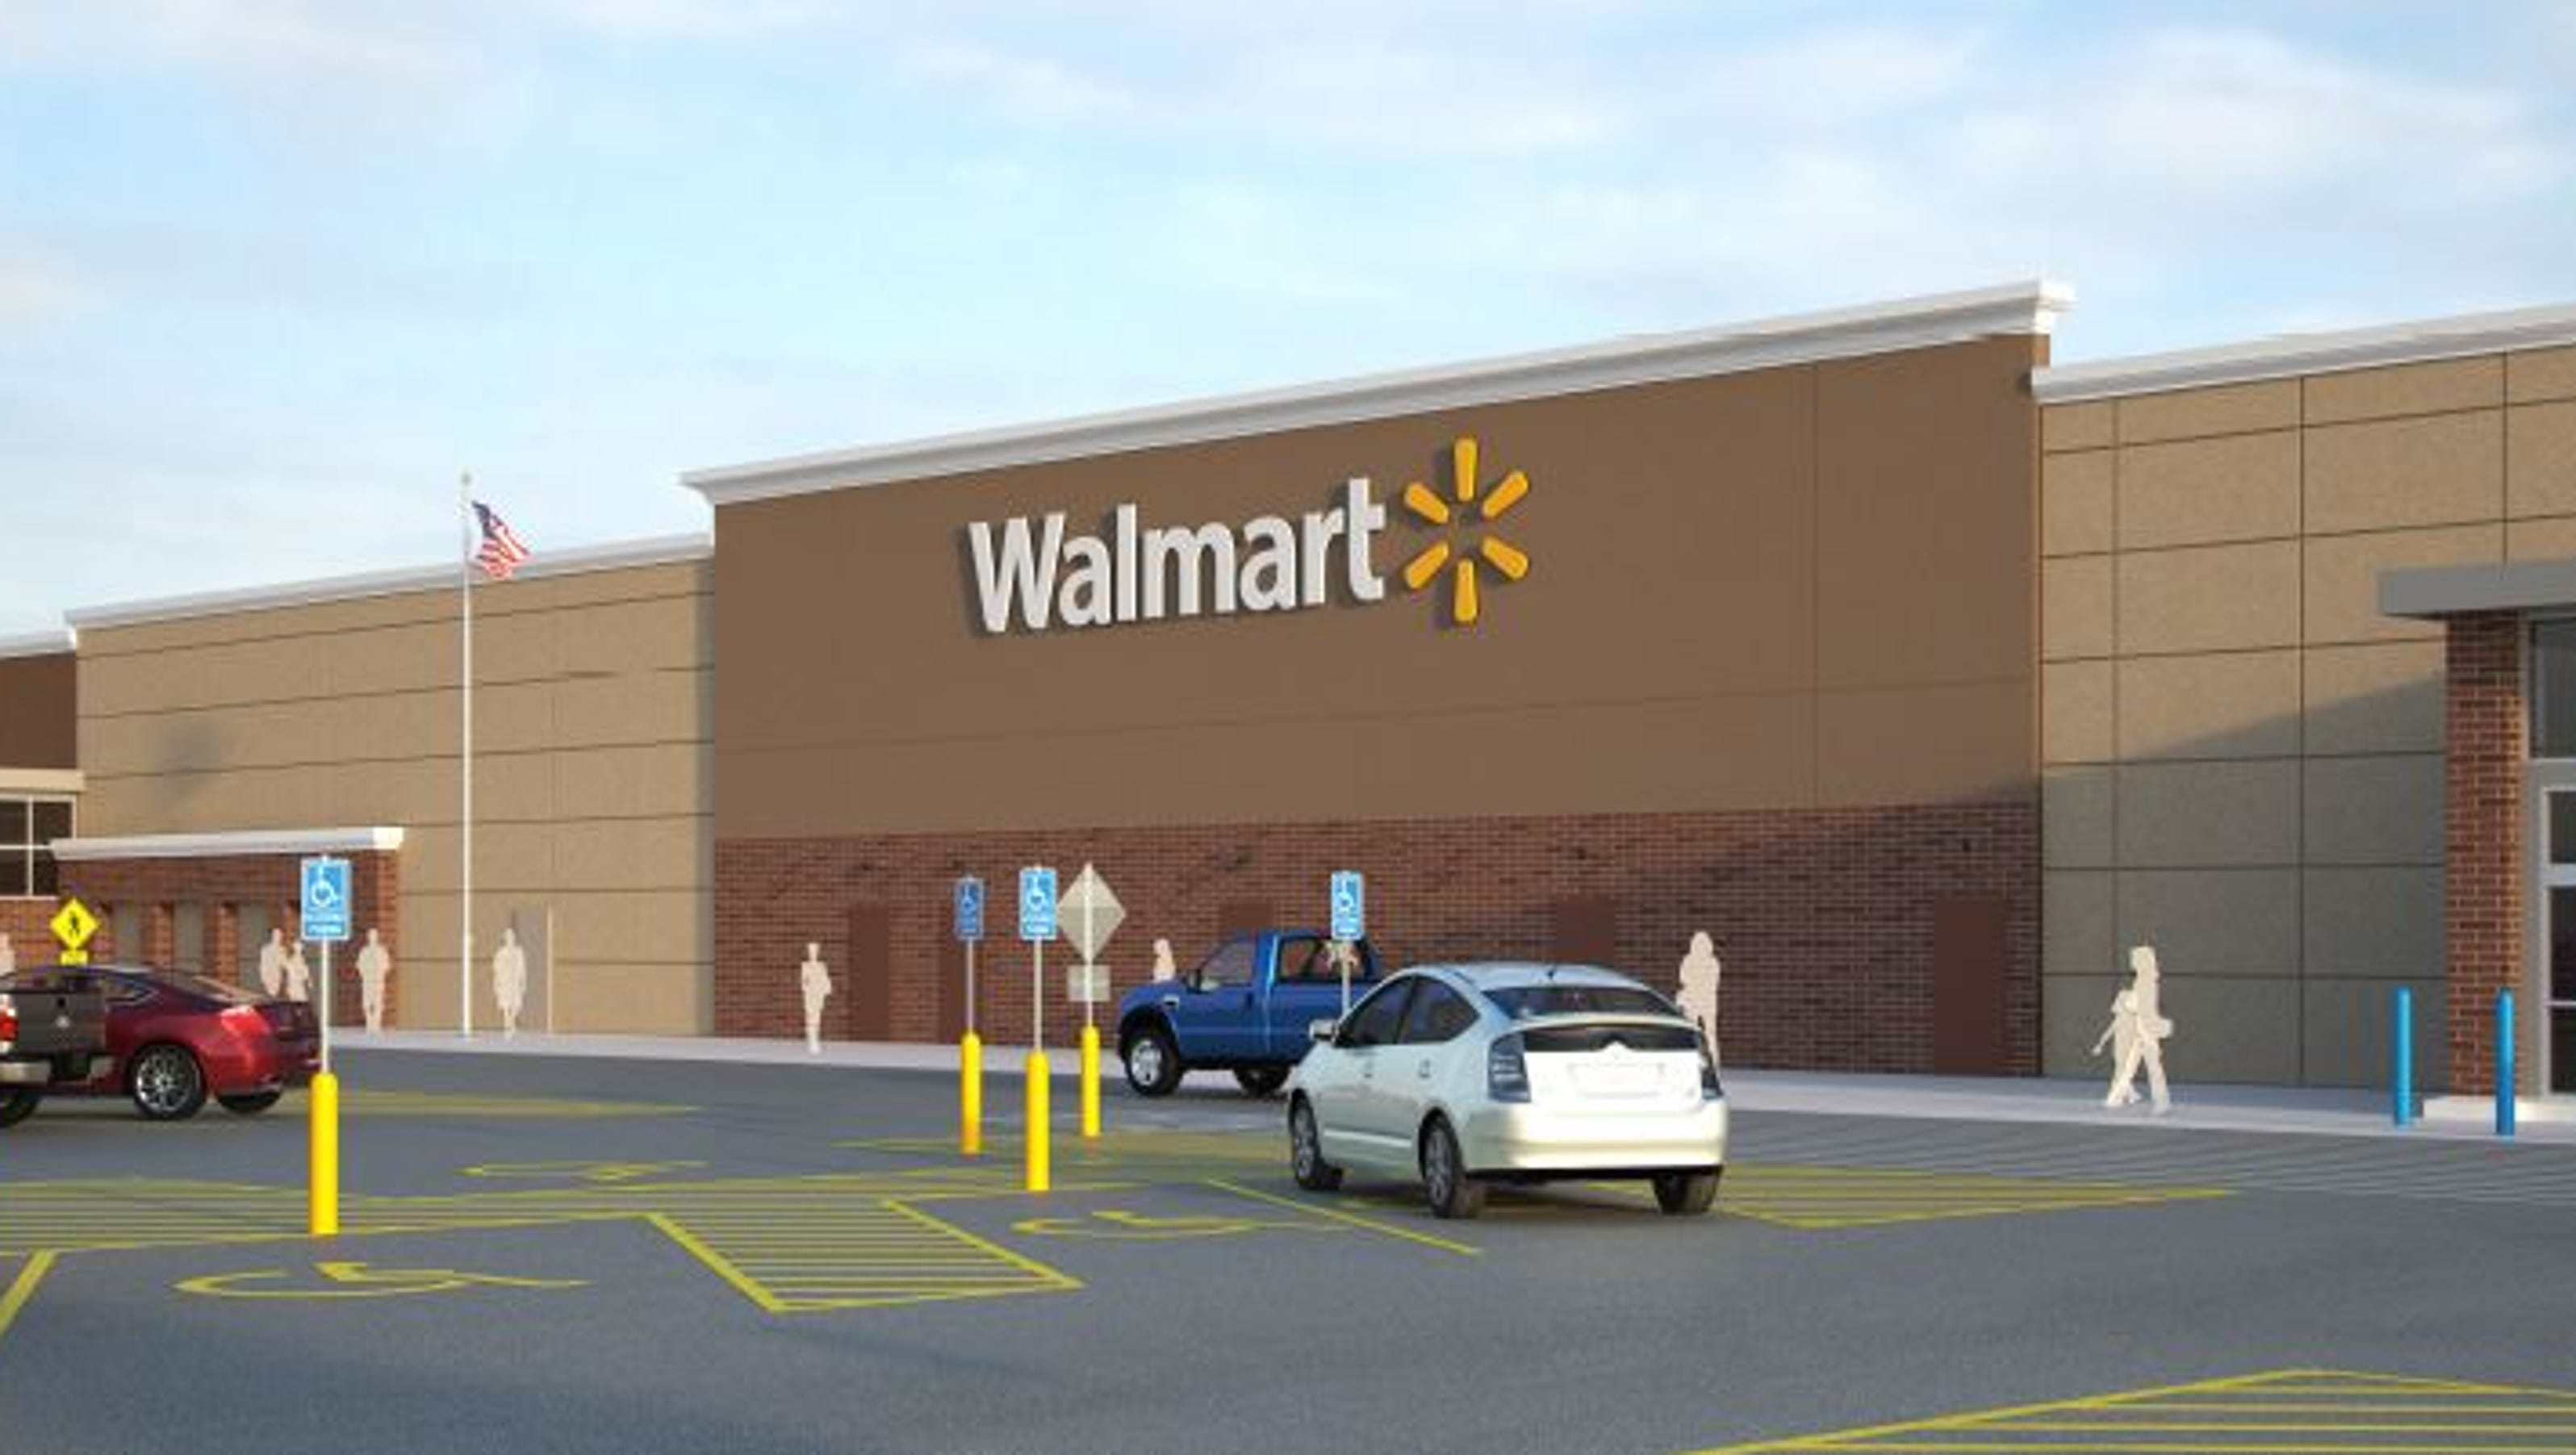 southern sf walmart project put on hold sioux falls argus leader southern sf walmart project put on hold sioux falls argus leader